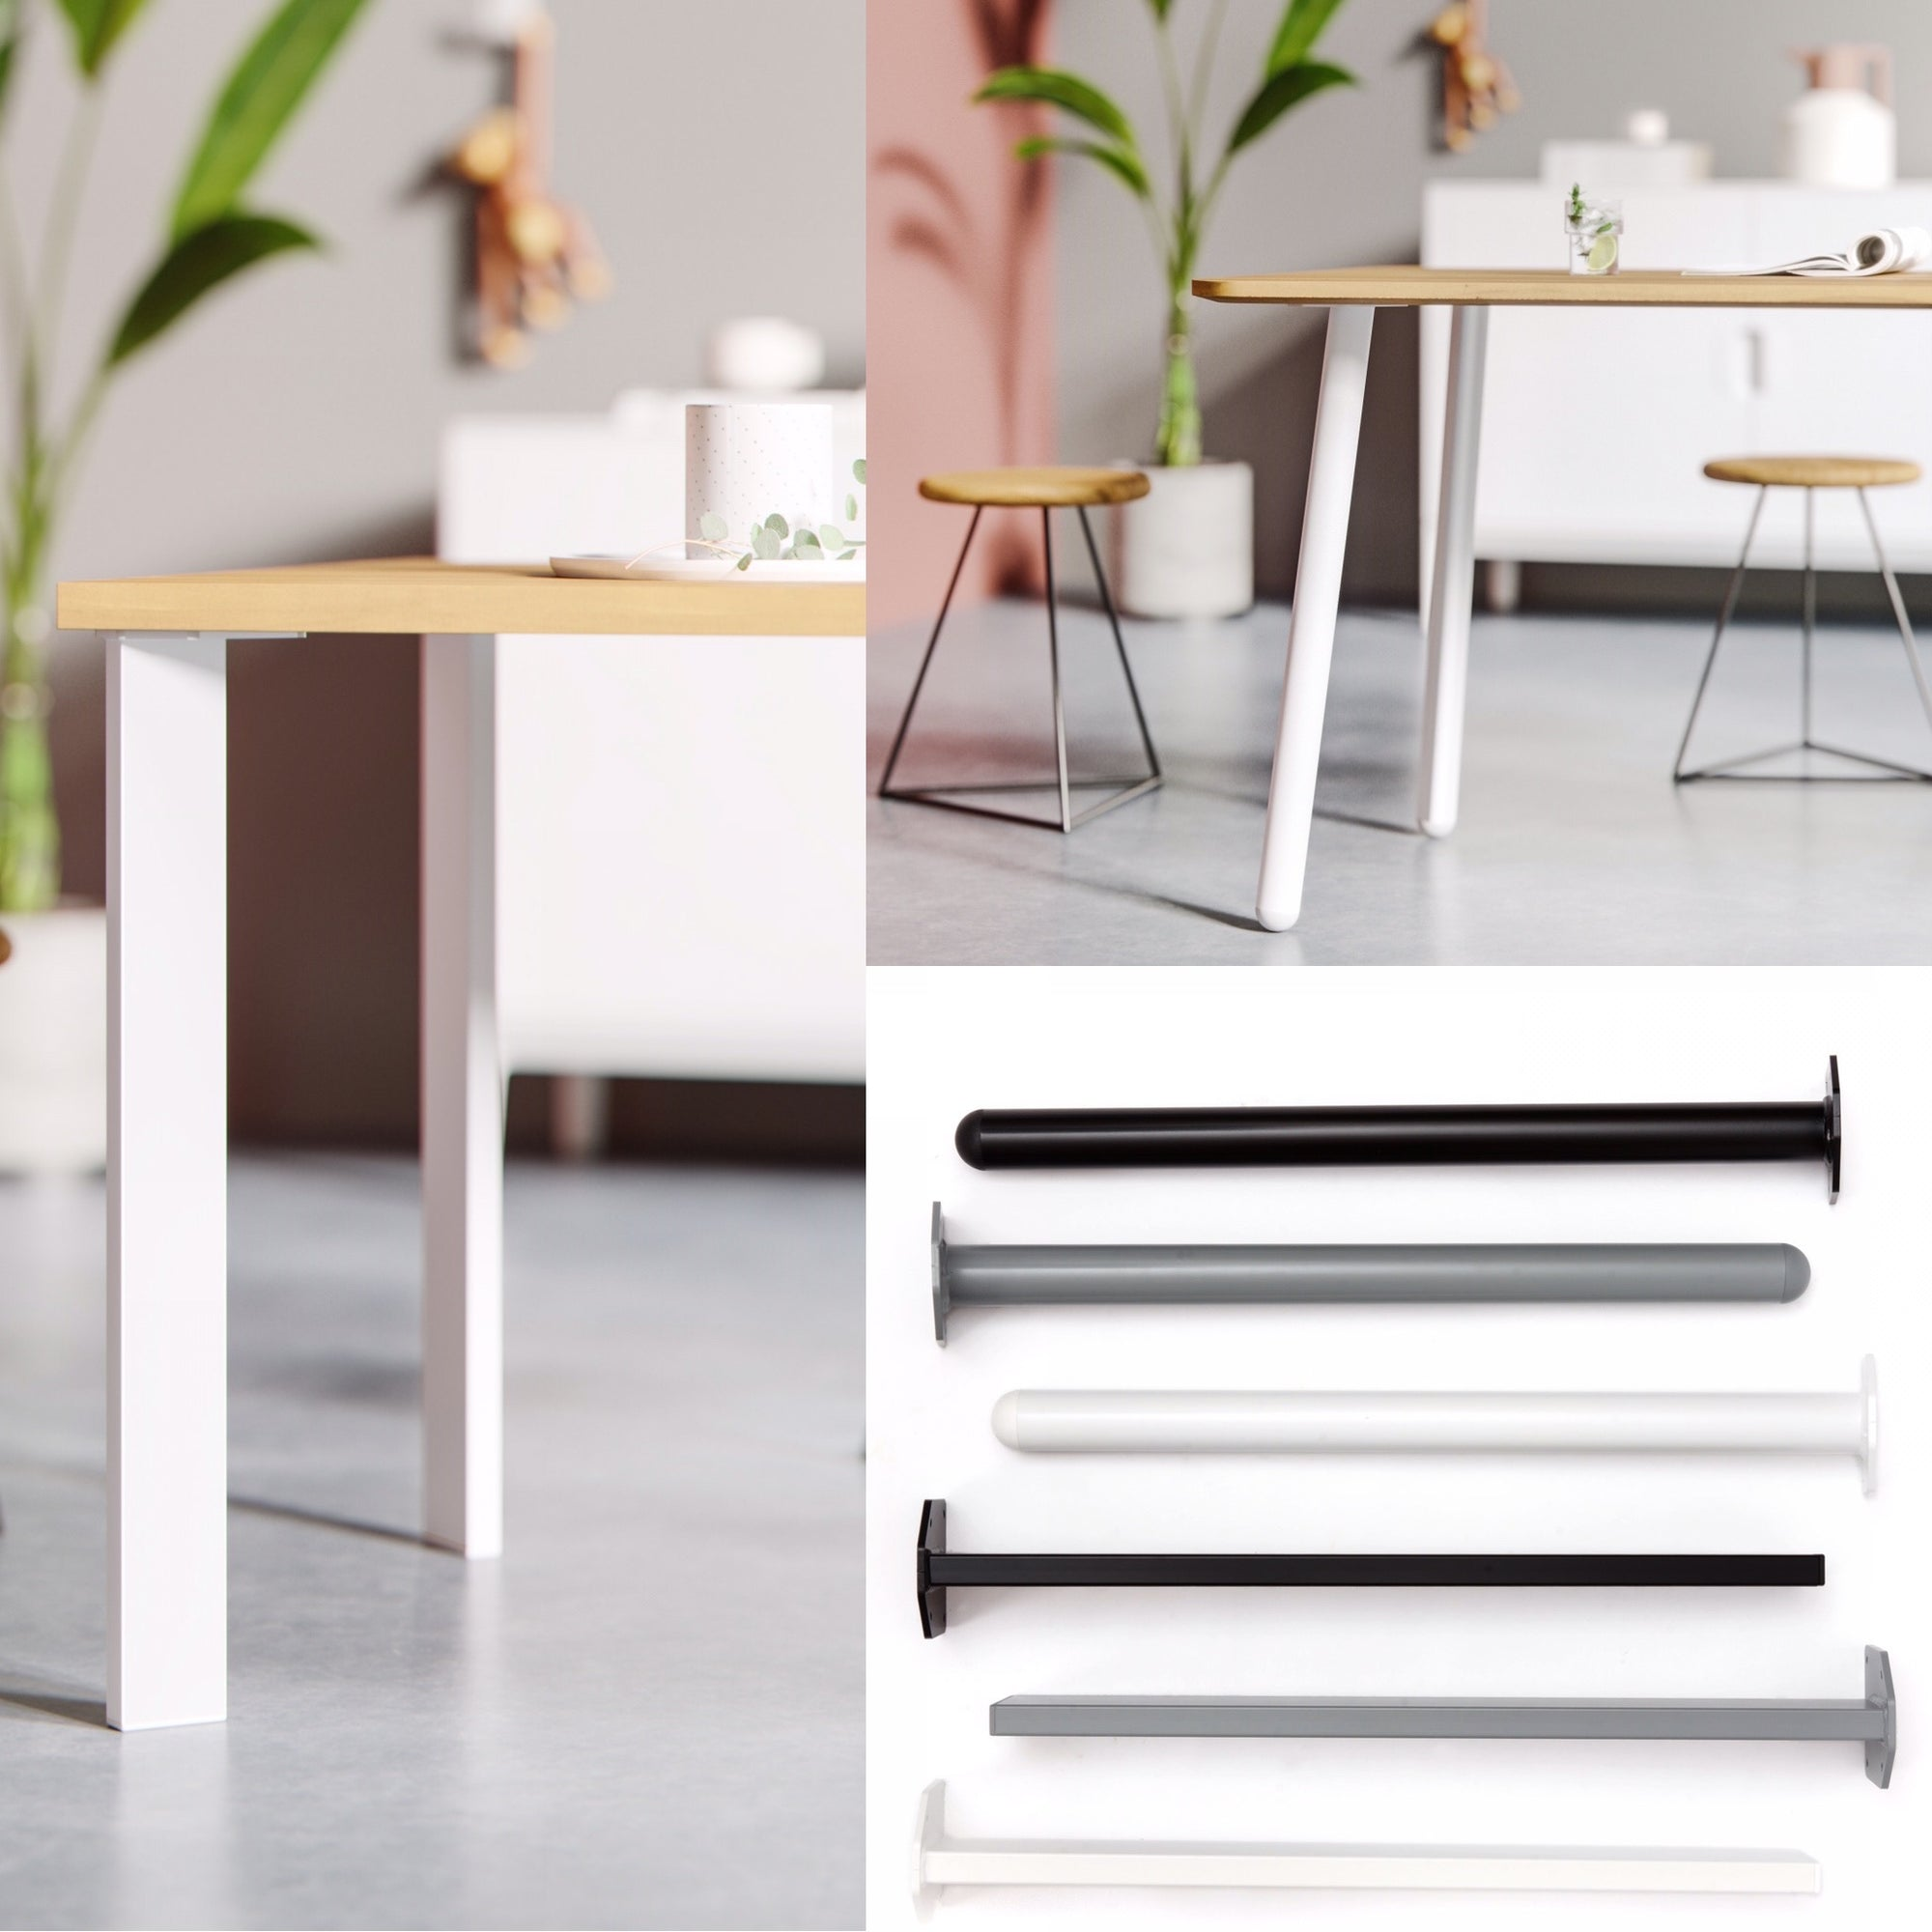 New: Single pin table legs